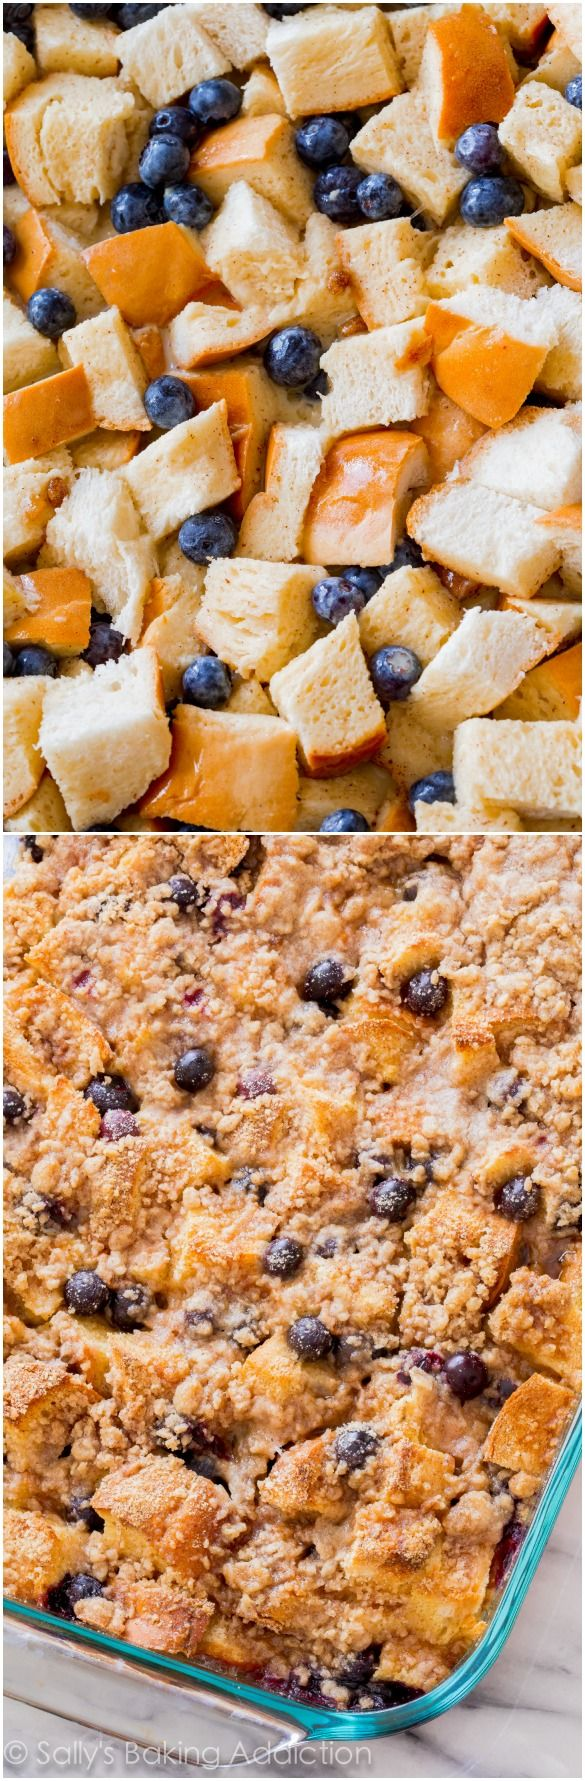 Unbelievable Blueberry French Toast Casserole! This is the perfect crowd-pleasing make ahead recipe for busy mornings. @egglandsbest